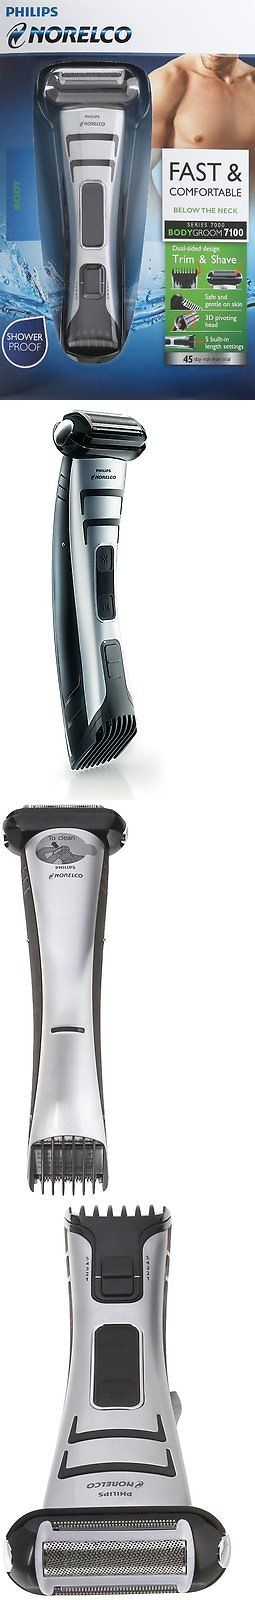 Mens Shavers: Philips Norelco Bodygroom Series 7100, Bg2040 (Washable Electric Shaver Trimmer) -> BUY IT NOW ONLY: $51.95 on eBay!